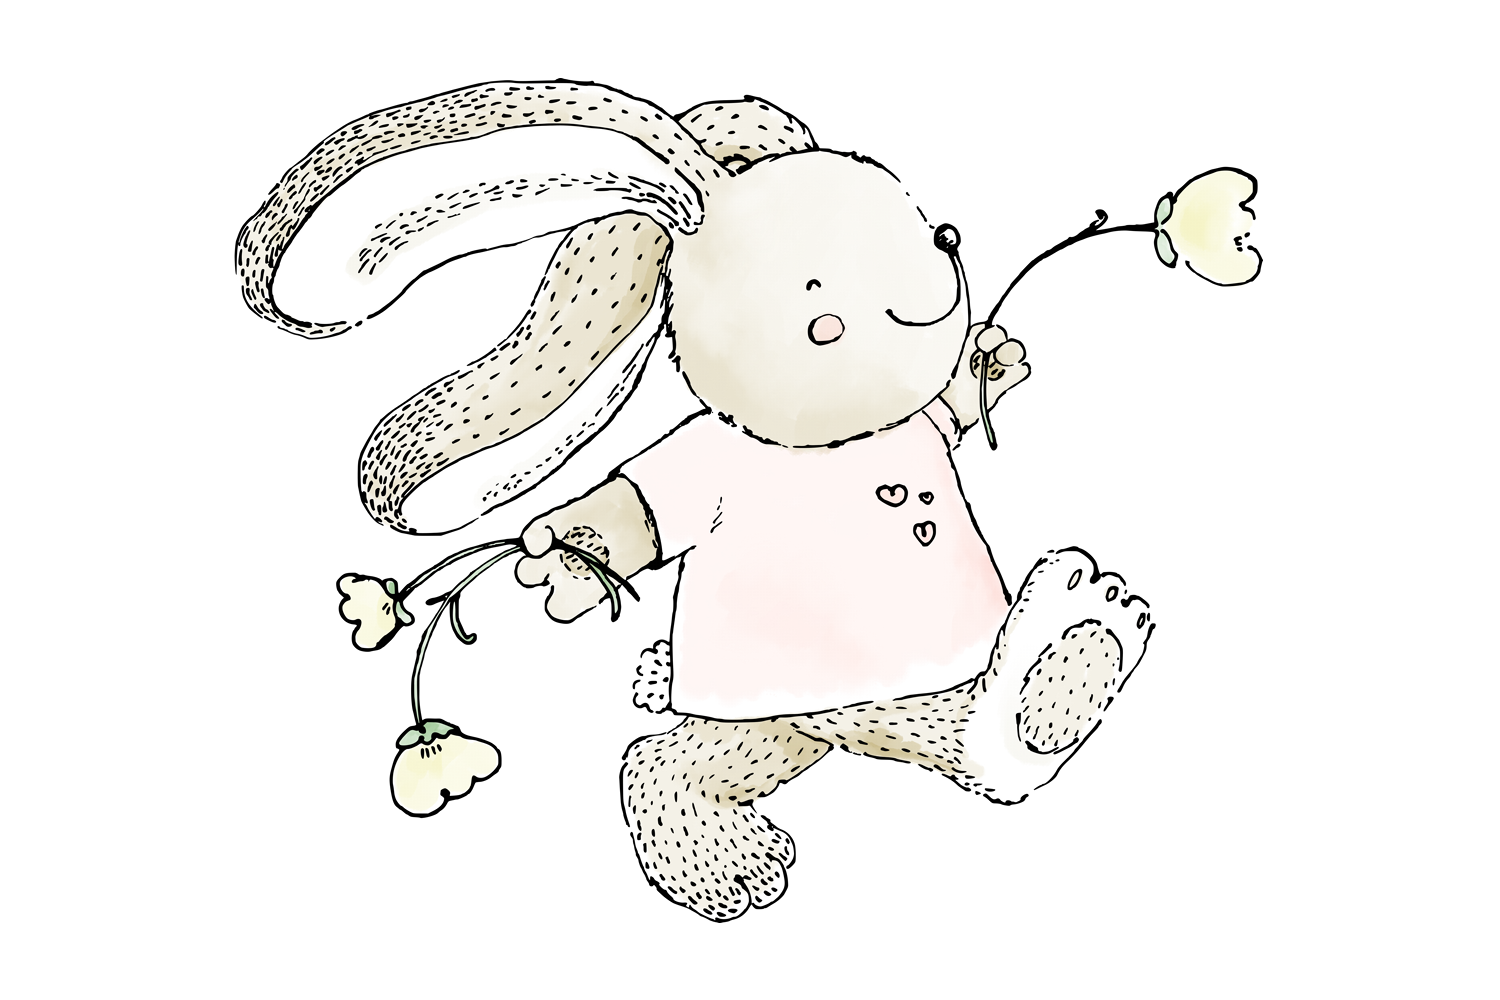 Cute 'Rabbit Skipping with Flowers'   Clip Art Illustration example image 3